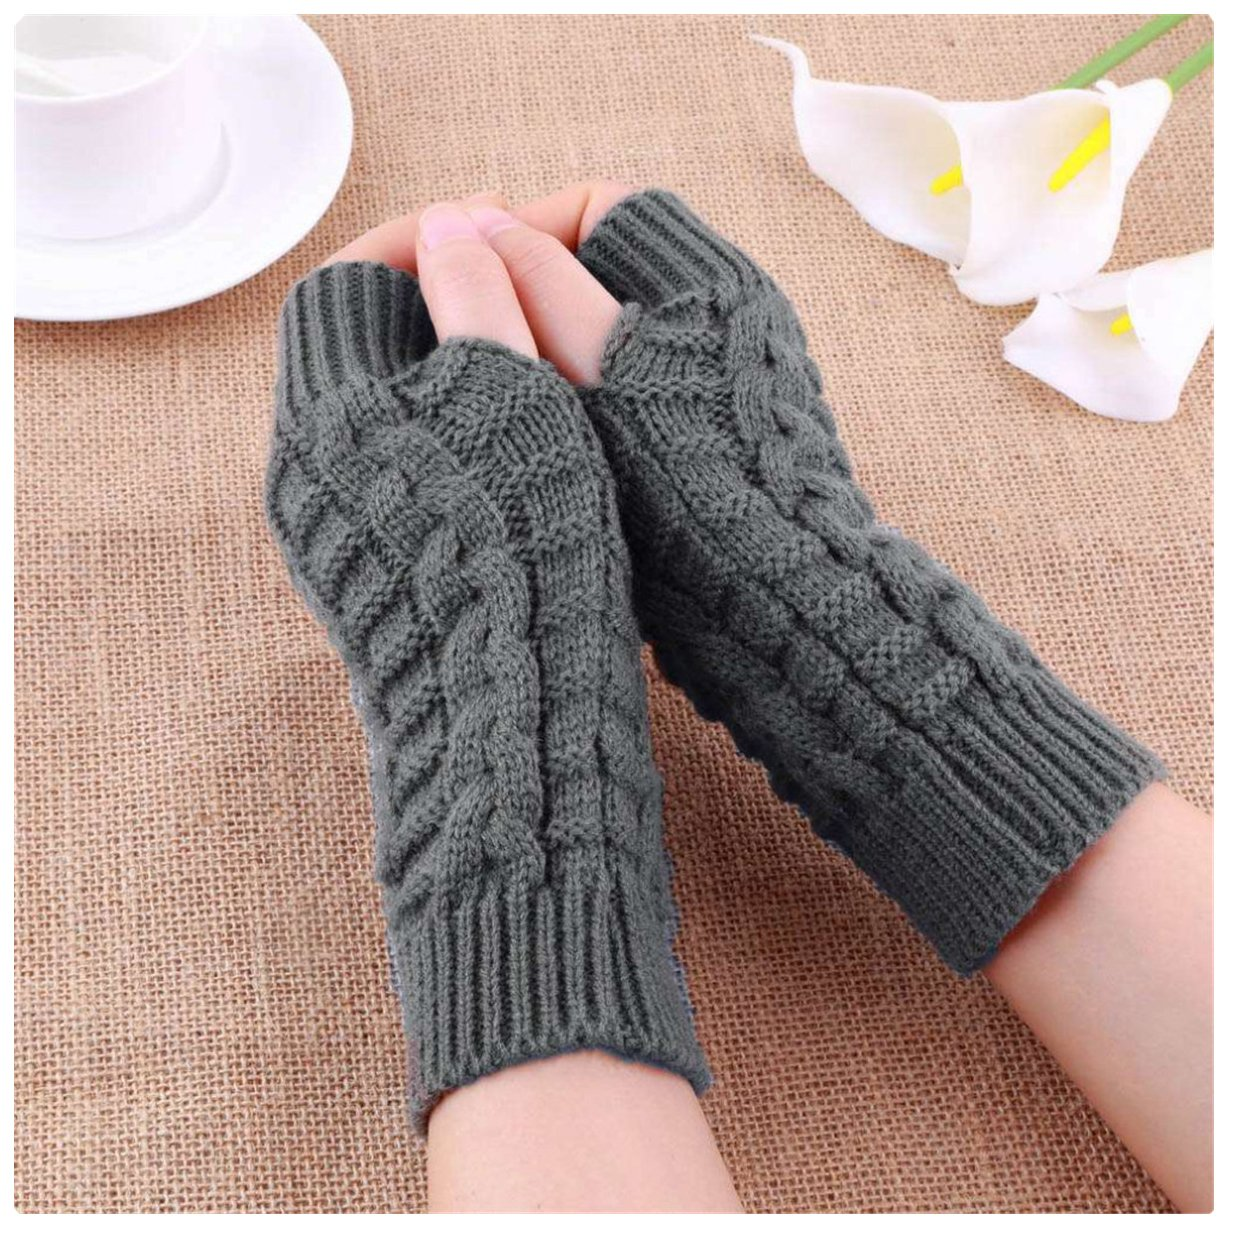 Winter Warm Knitted Gloves Fingerless Soft Warm Gloves for Work Writing,Grey ECYC